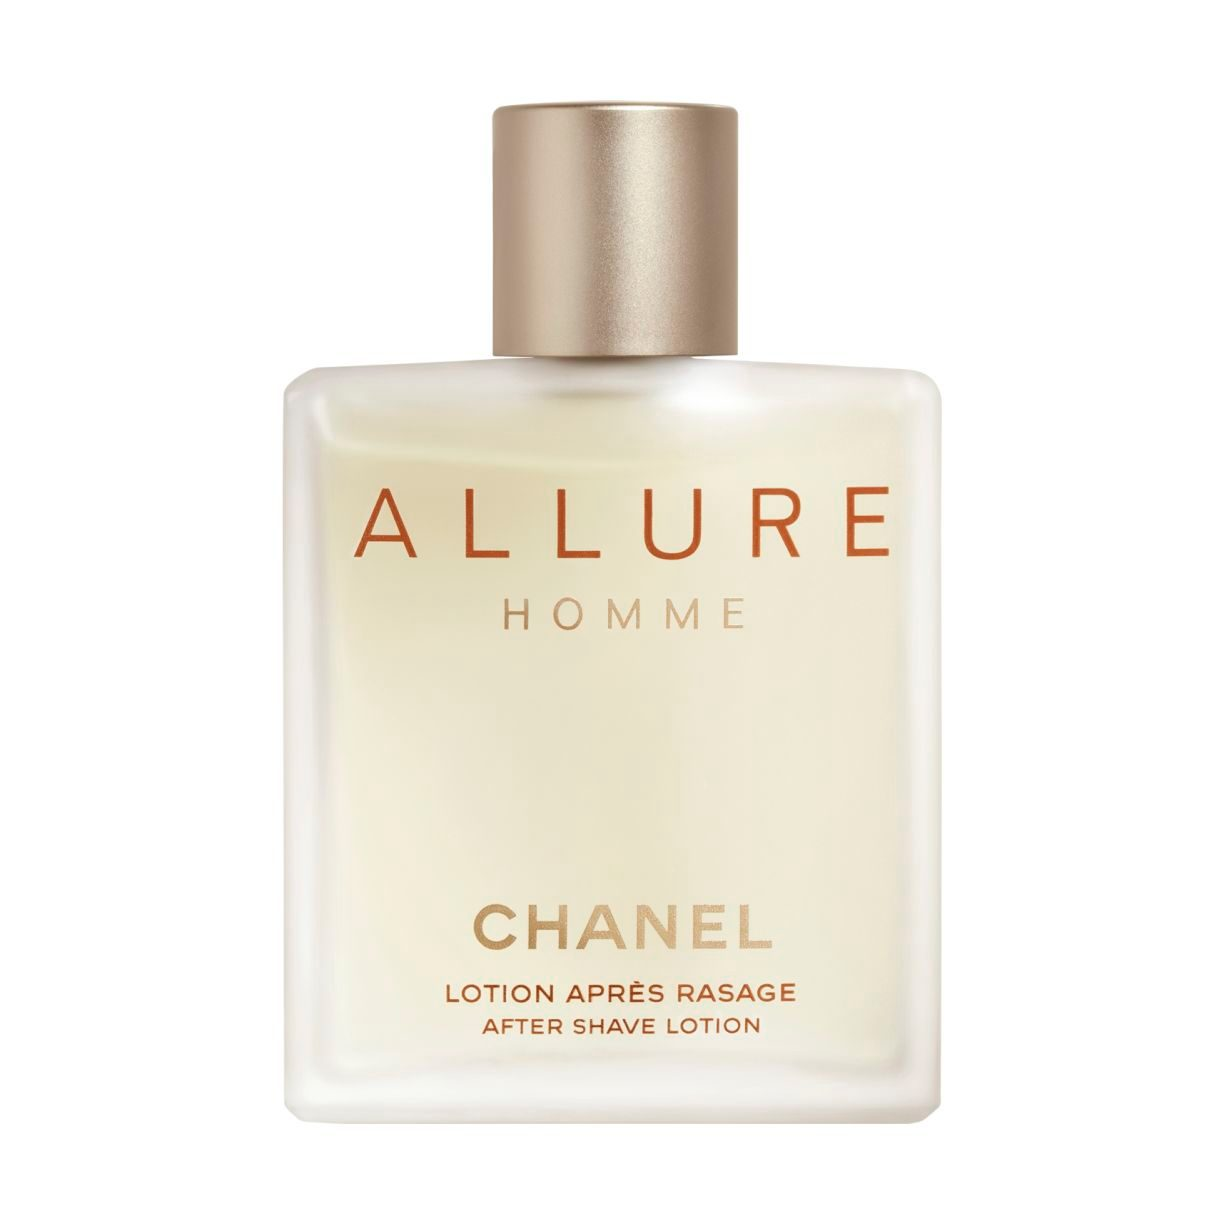 ALLURE HOMME AFTERSHAVE LOTION 100ml